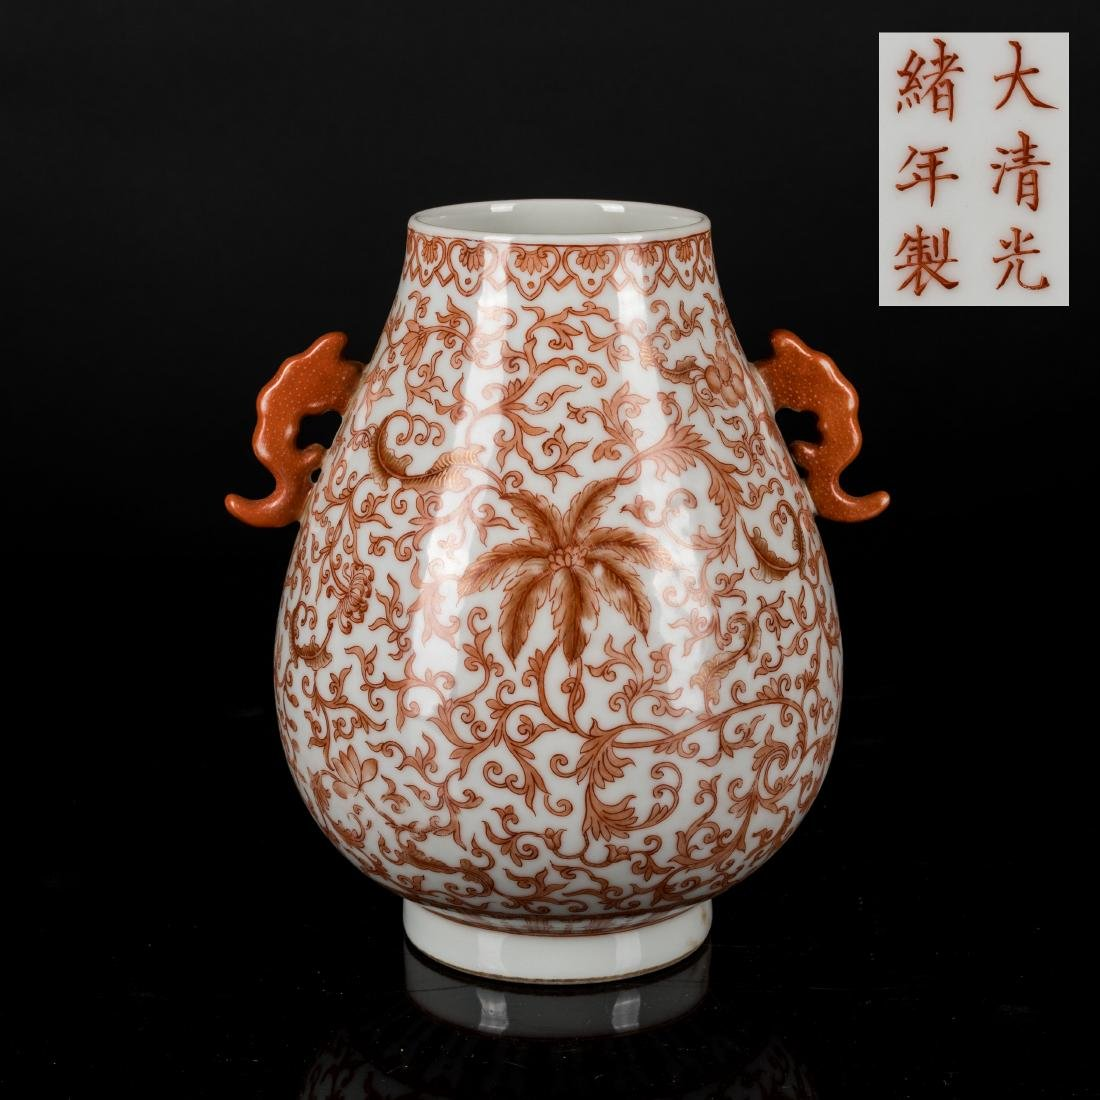 19th Chinese Antique Coral Red Porcelain Vase